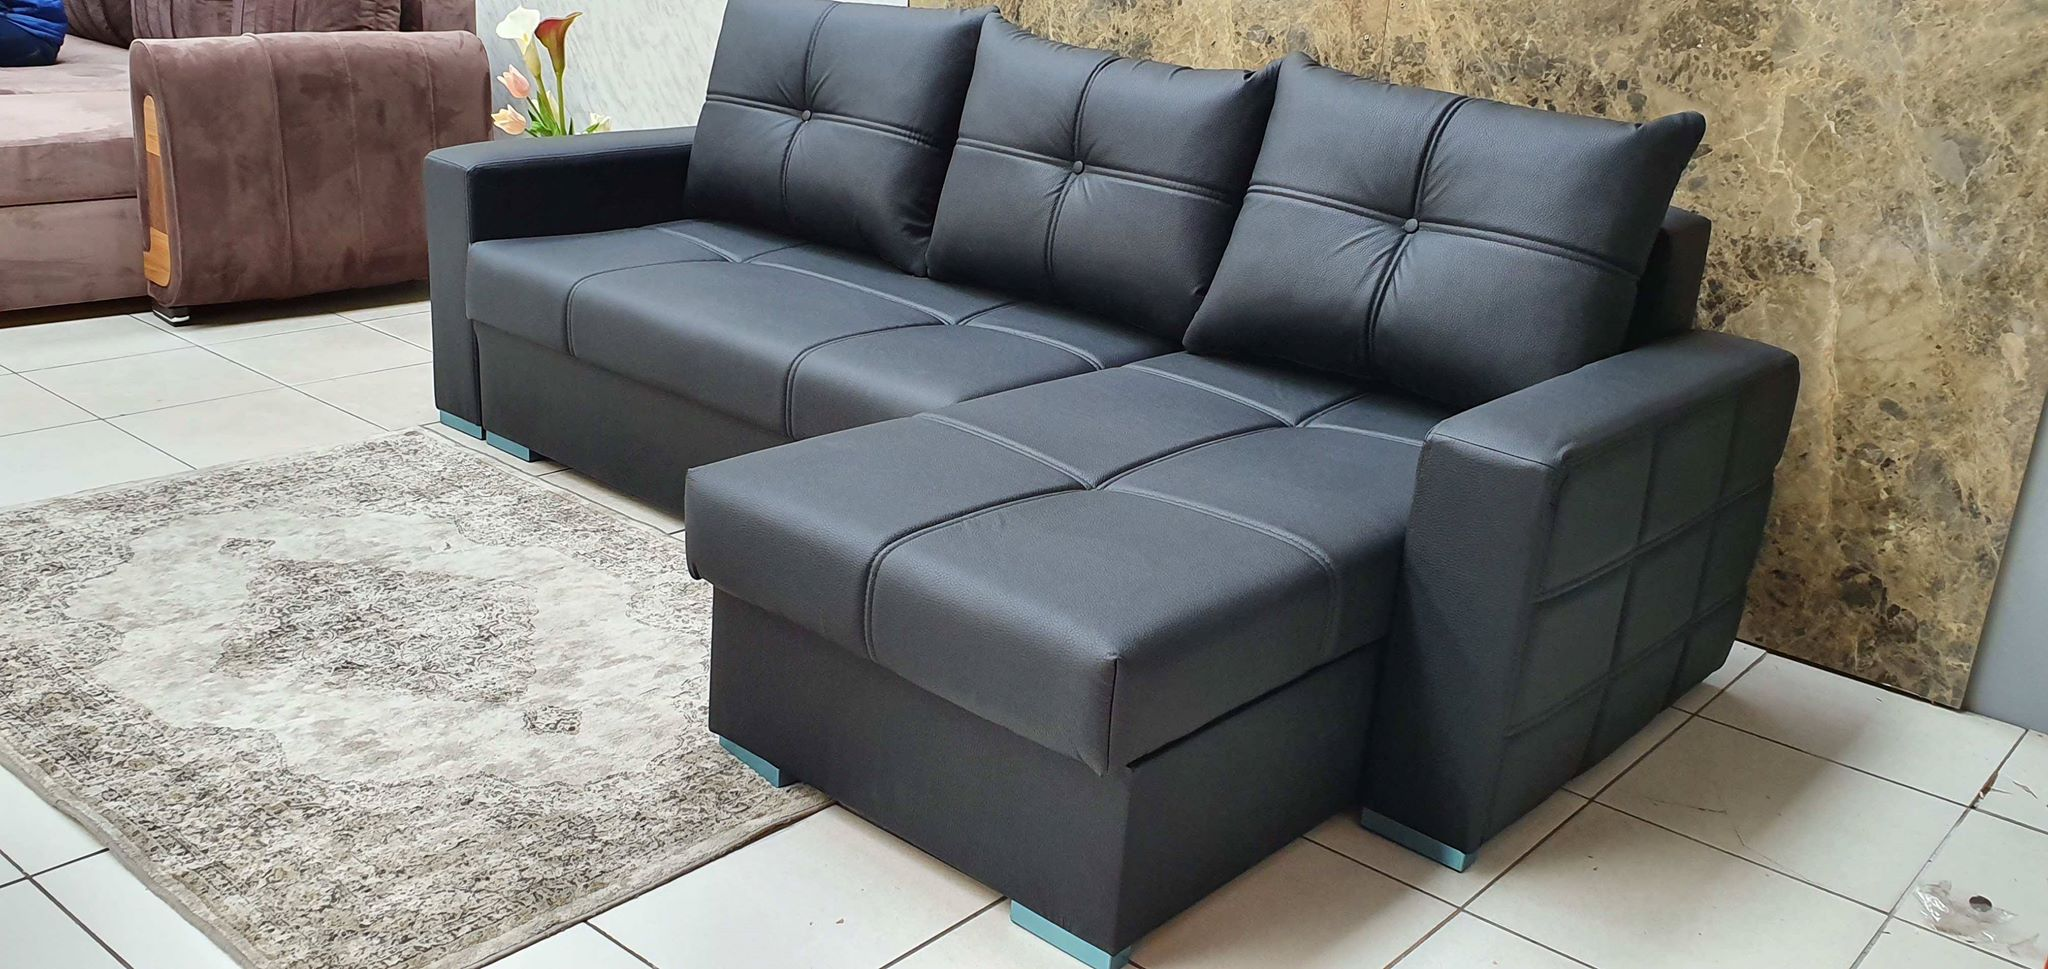 New Black Leather corner sofa bed